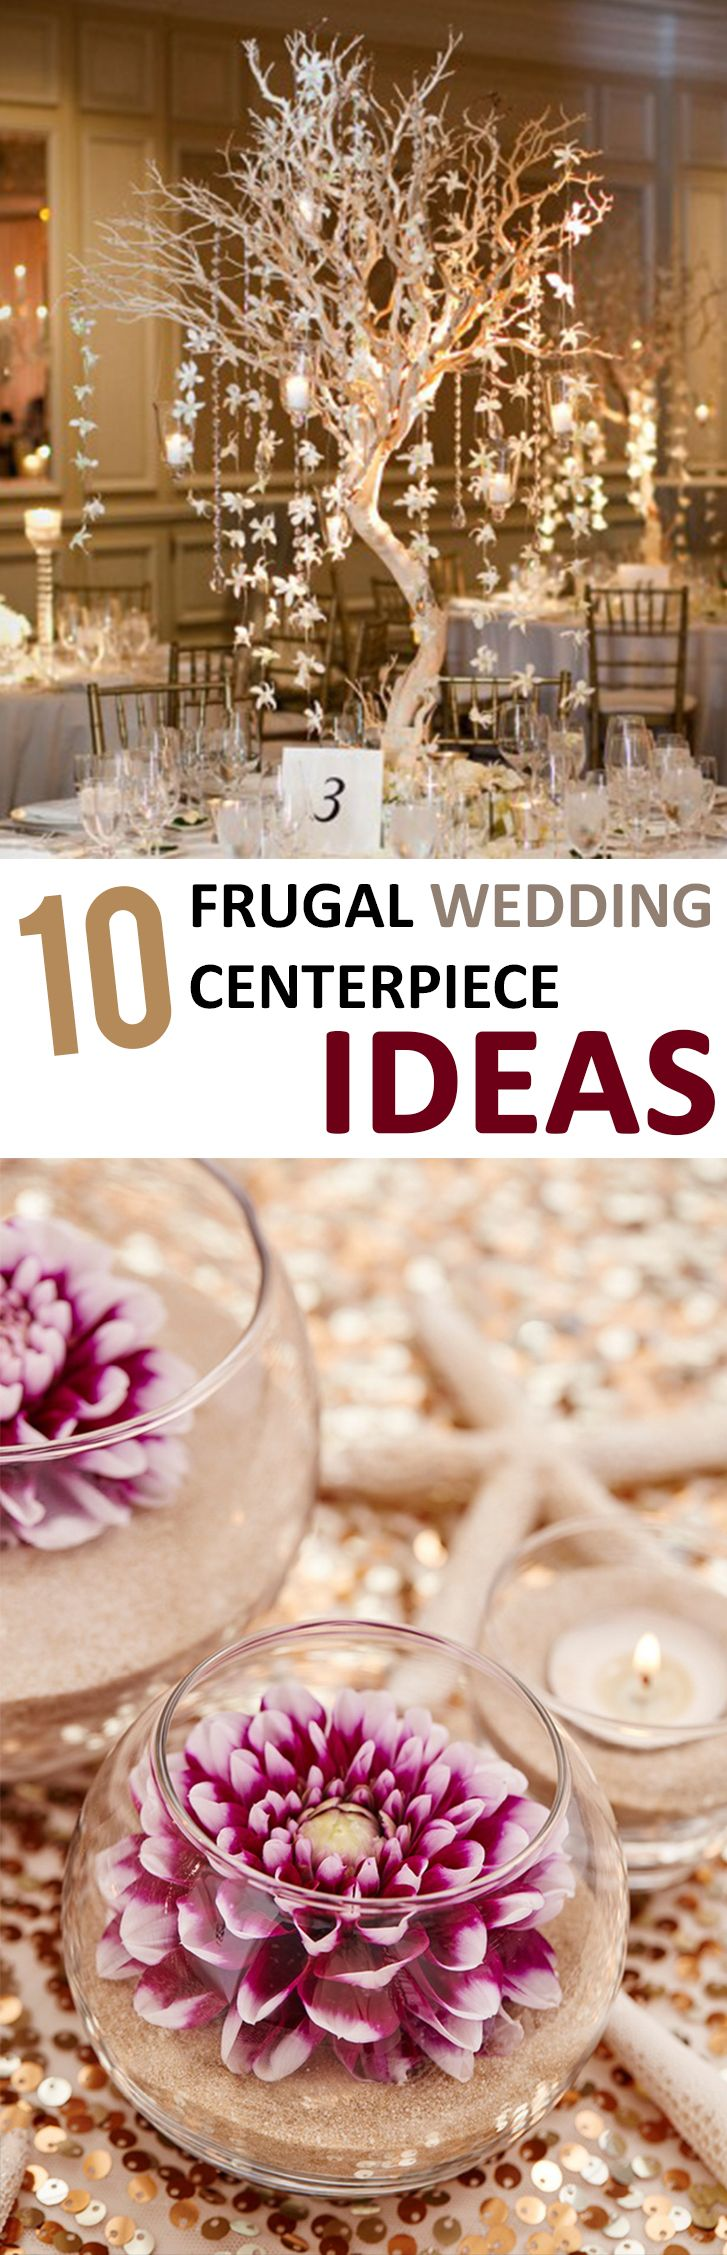 10 Frugal Wedding Centerpiece Ideas